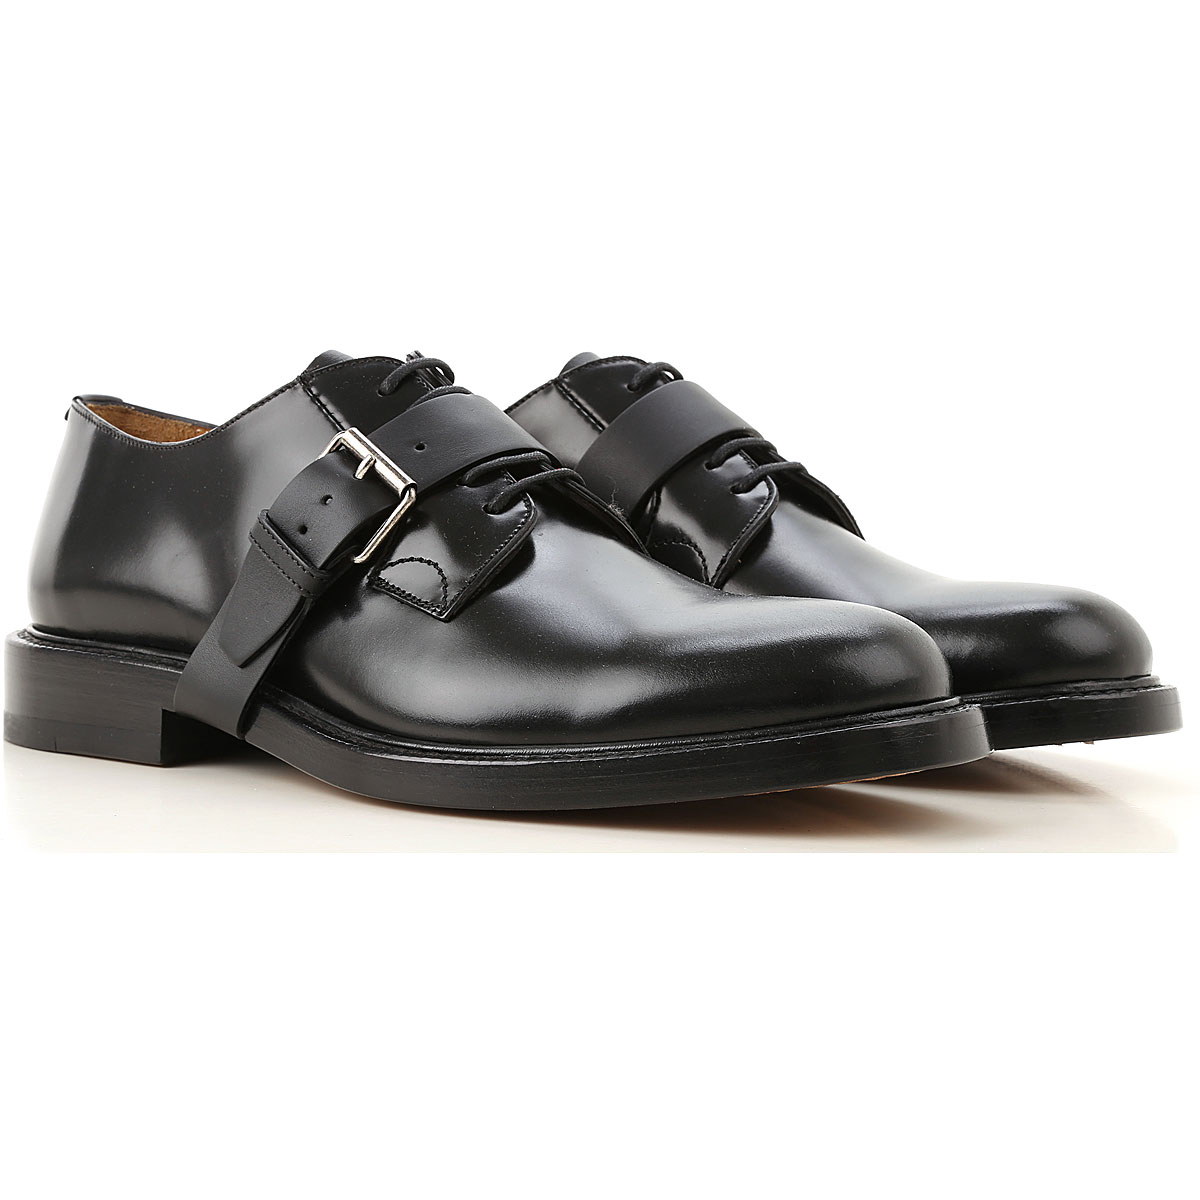 Valentino Garavani Lace Up Shoes for Men Oxfords, Derbies and Brogues On Sale in Outlet, Black, Leather, 2019, 9 9.5